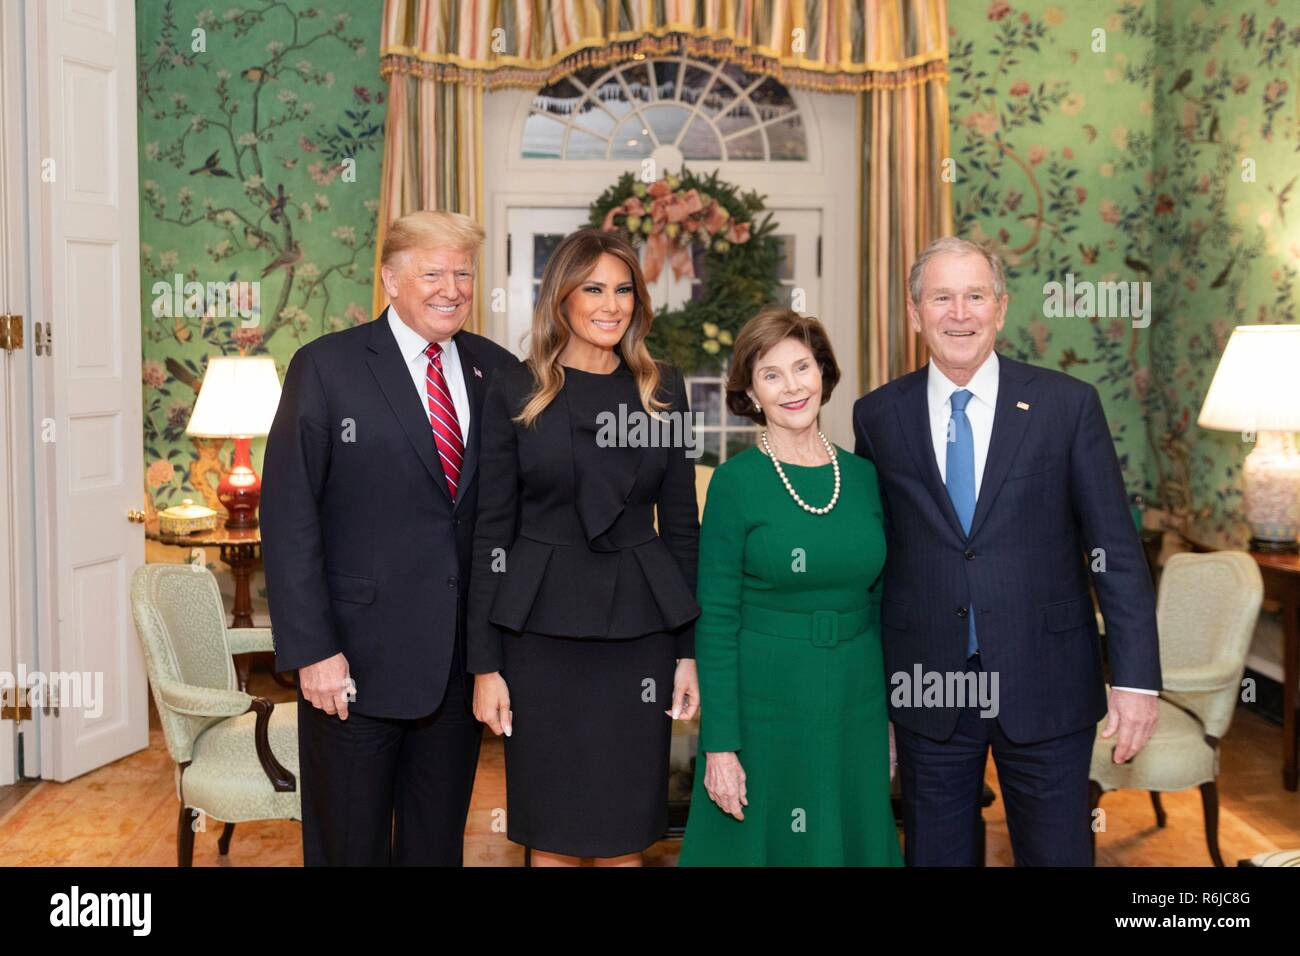 Washington DC, USA. 4th December, 2018. Former U.S. President George W. Bush, right, and Laura Bush stand together with President Donald Trump and First Lady Melania Trump inside Blair House December 4, 2018 in Washington, DC. Bush is staying at Blair House to attend the memorial service for his father the late President George H.W. Bush. Credit: Planetpix/Alamy Live News - Stock Image